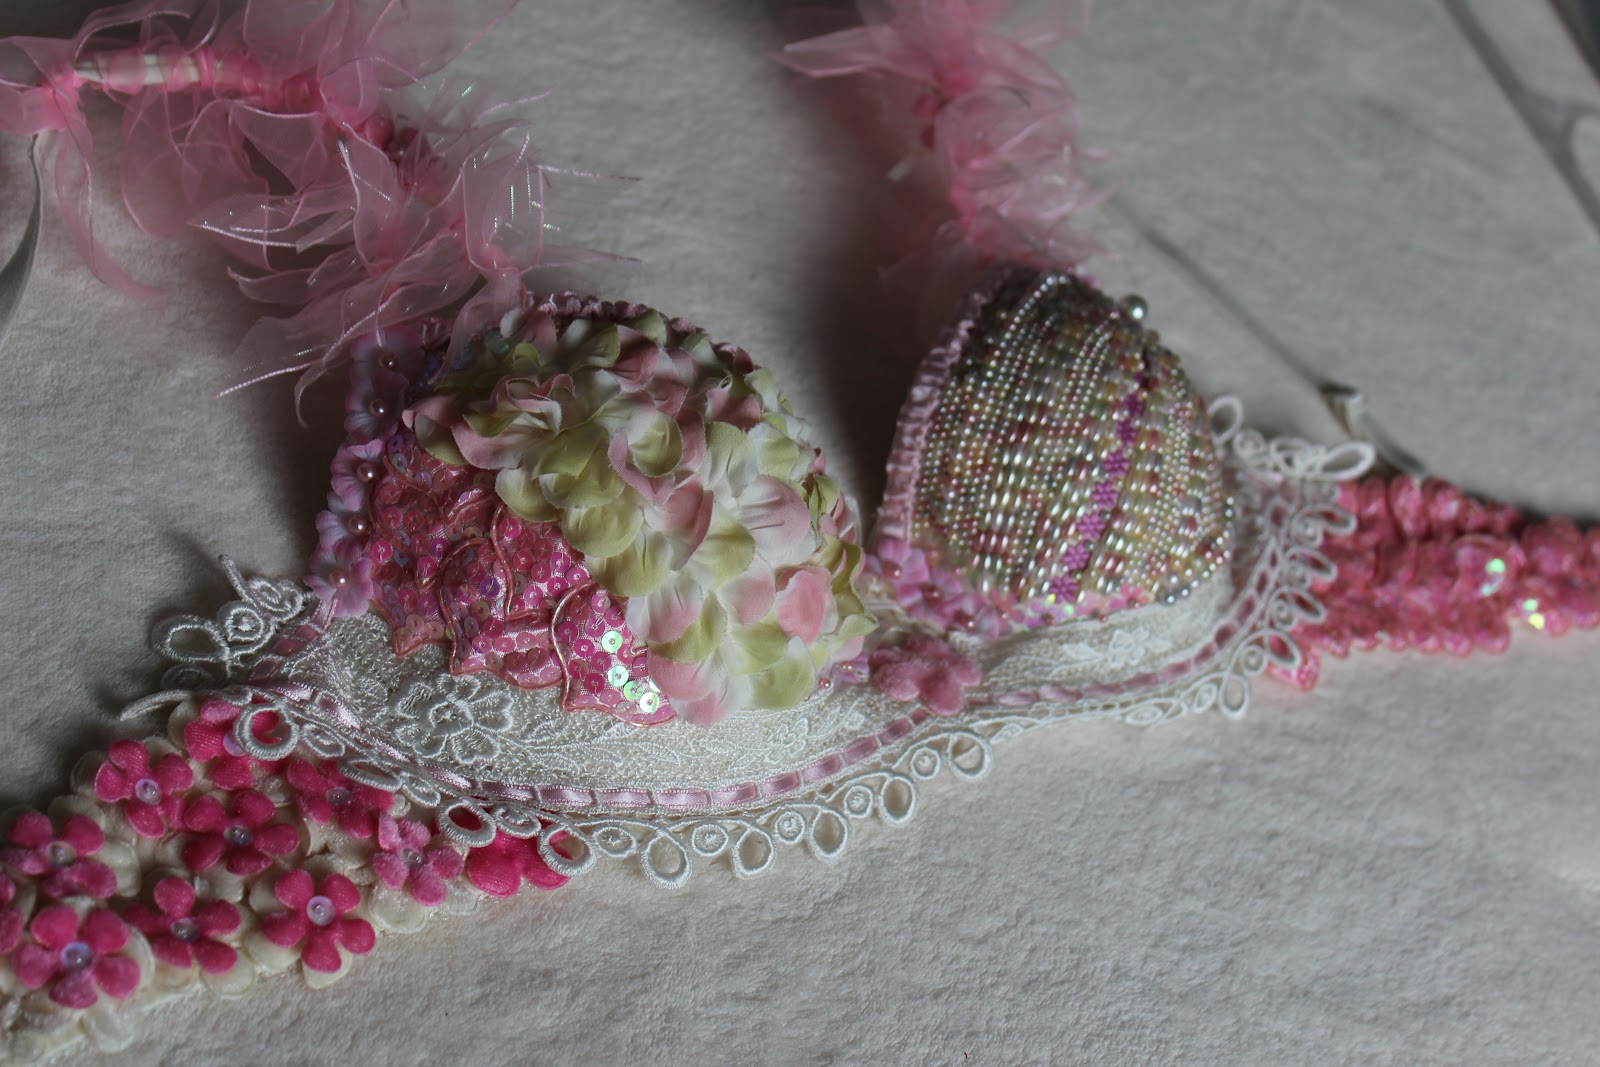 Breast Cancer Bra Decorating Ideas http://northernlightscrafts.blogspot.com/2012/03/bra-i-decorated-for-bras-for-cause.html